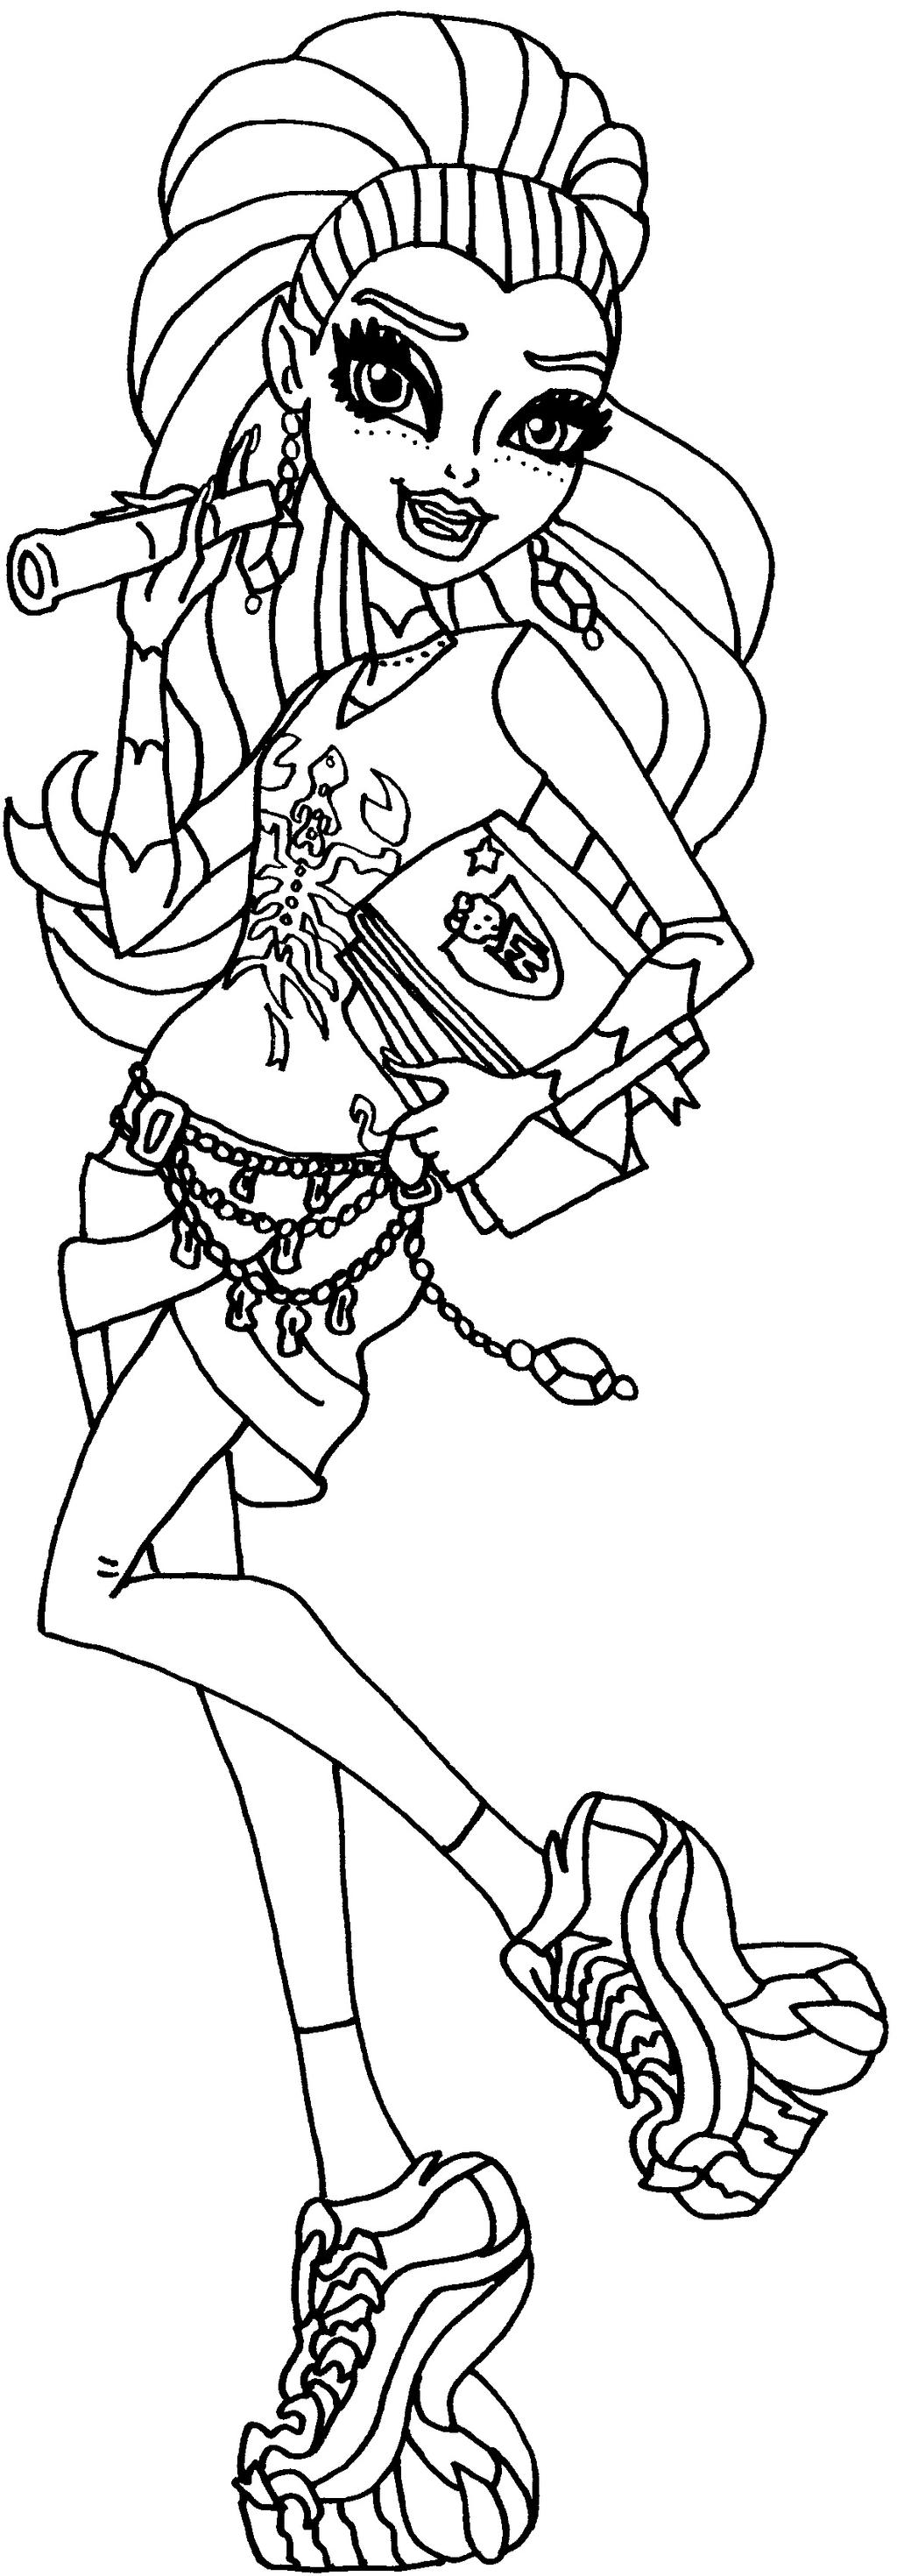 new scaremester gigi grant by elfkena new scaremester gigi grant by elfkena - Scary Monster High Coloring Pages